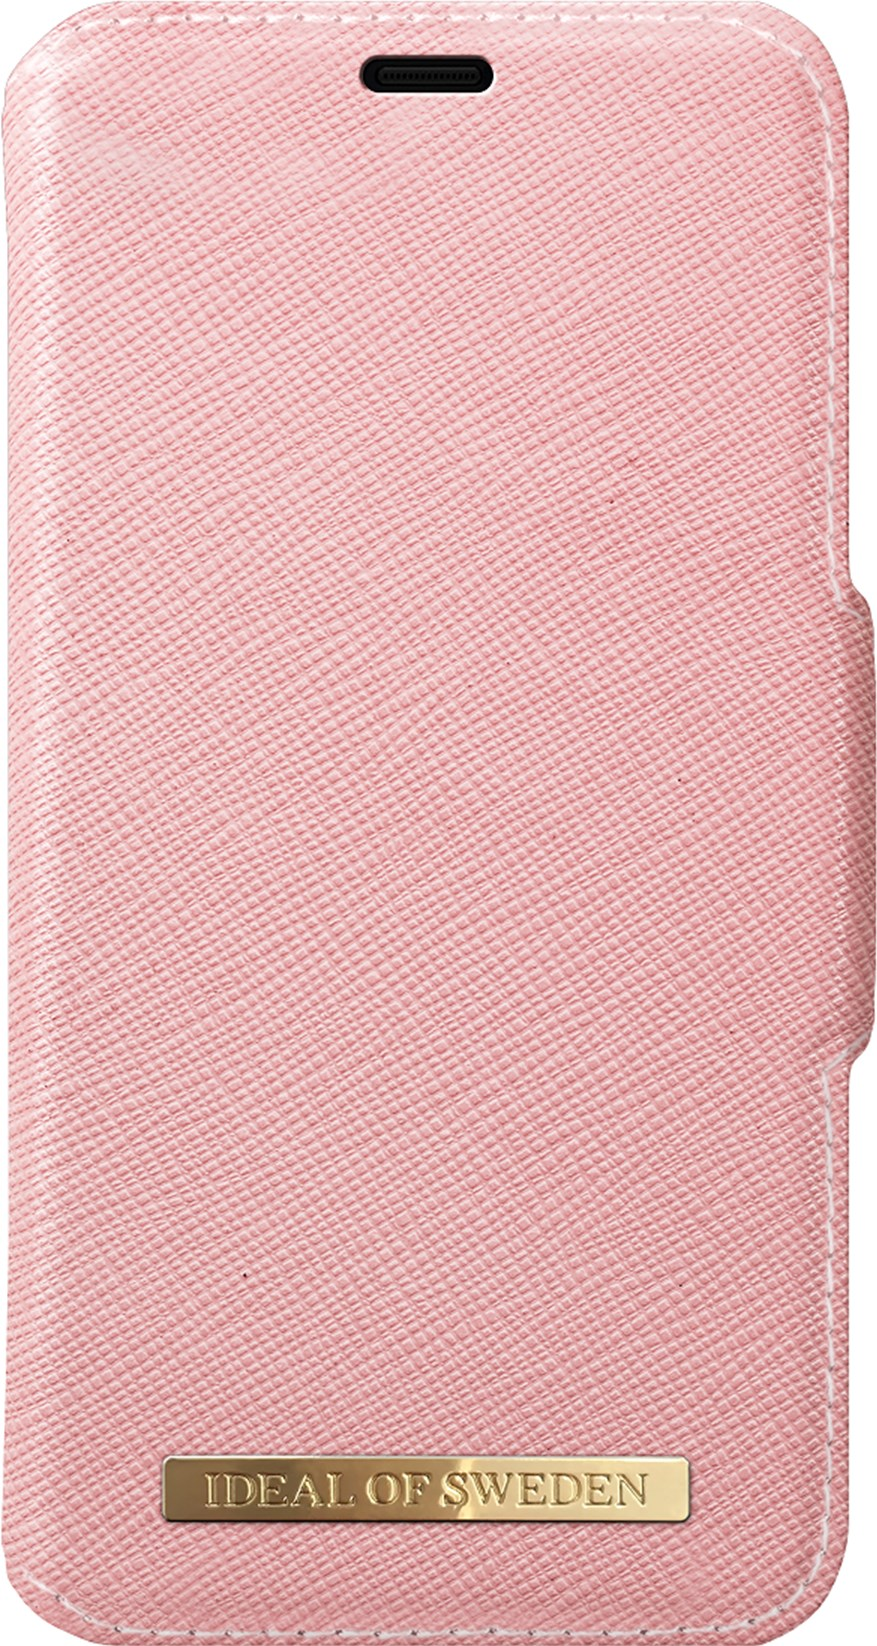 iDeal of Sweden Ideal Fashion Wallet Samsung Galaxy S10 Pink